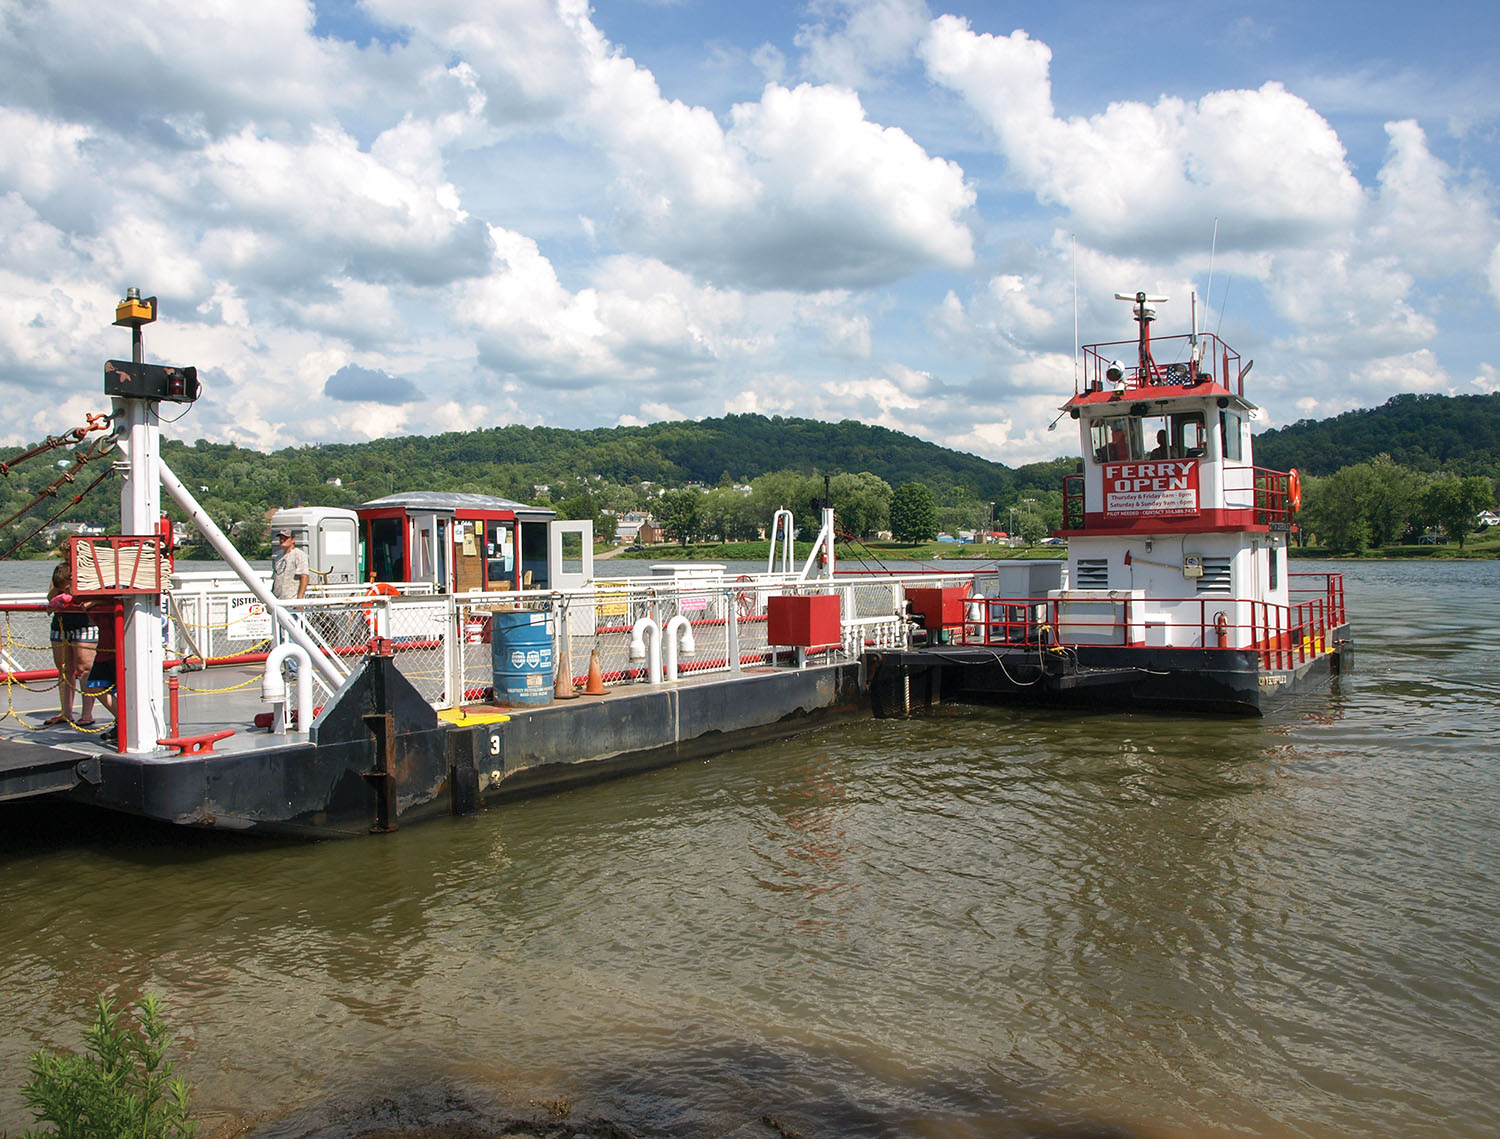 The Sistersville Ferry in 2015 photograph. (Photo by Jim Ross)